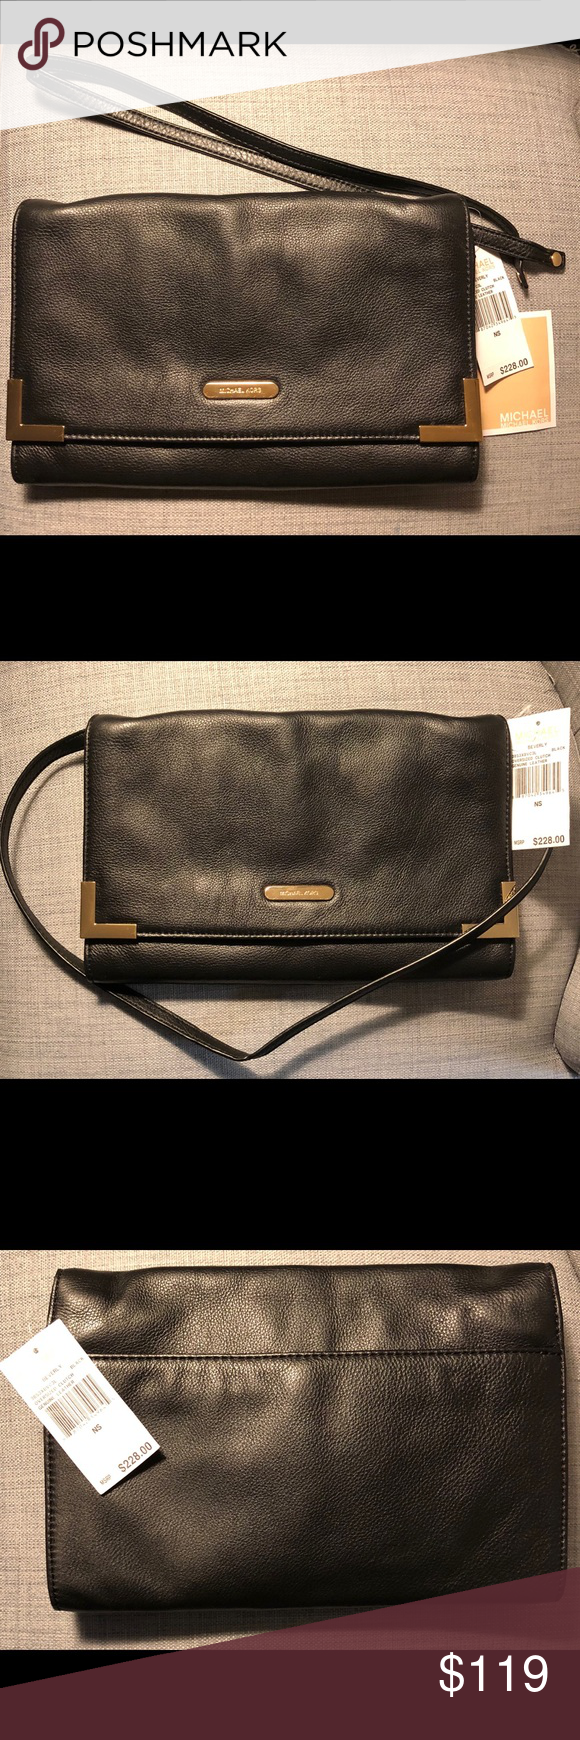 1e8437468308 Michael Kors Beverly Black Leather Clutch Purse Michael Kors Beverly  Oversized Soft Black Genuine Leather Clutch